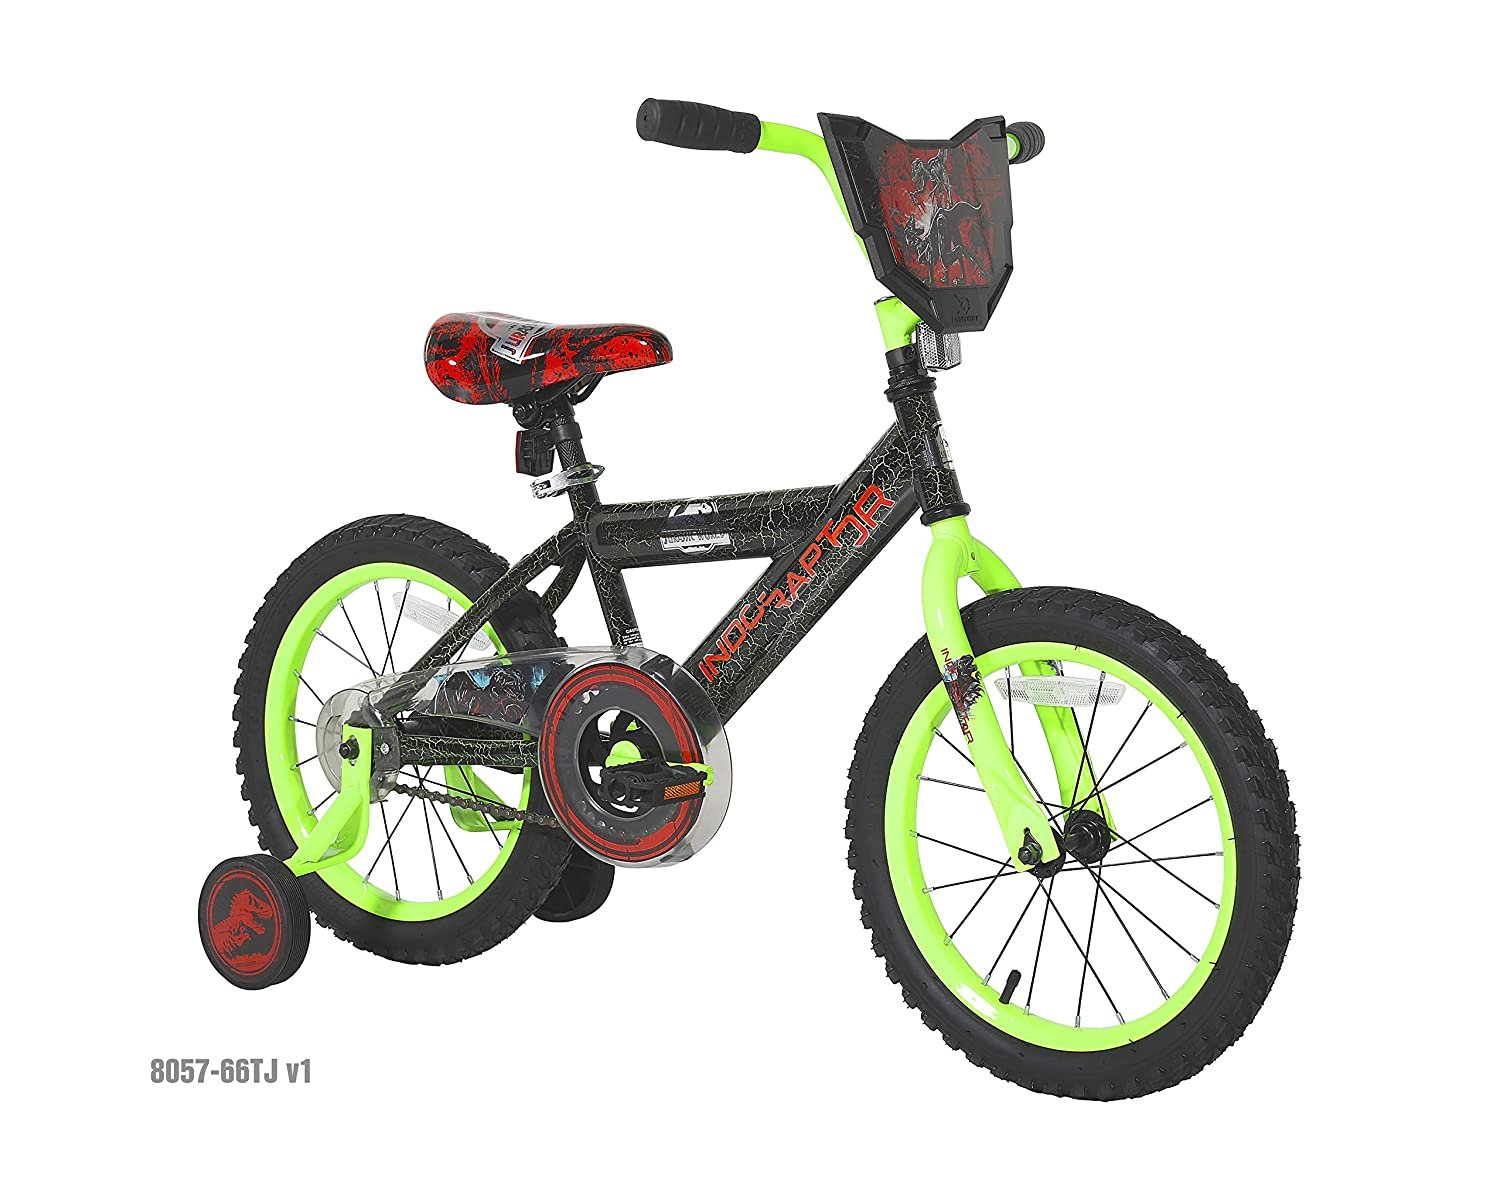 Dynacraft Jurassic World Bike, 16'', Green 16'' 8057-66TJ